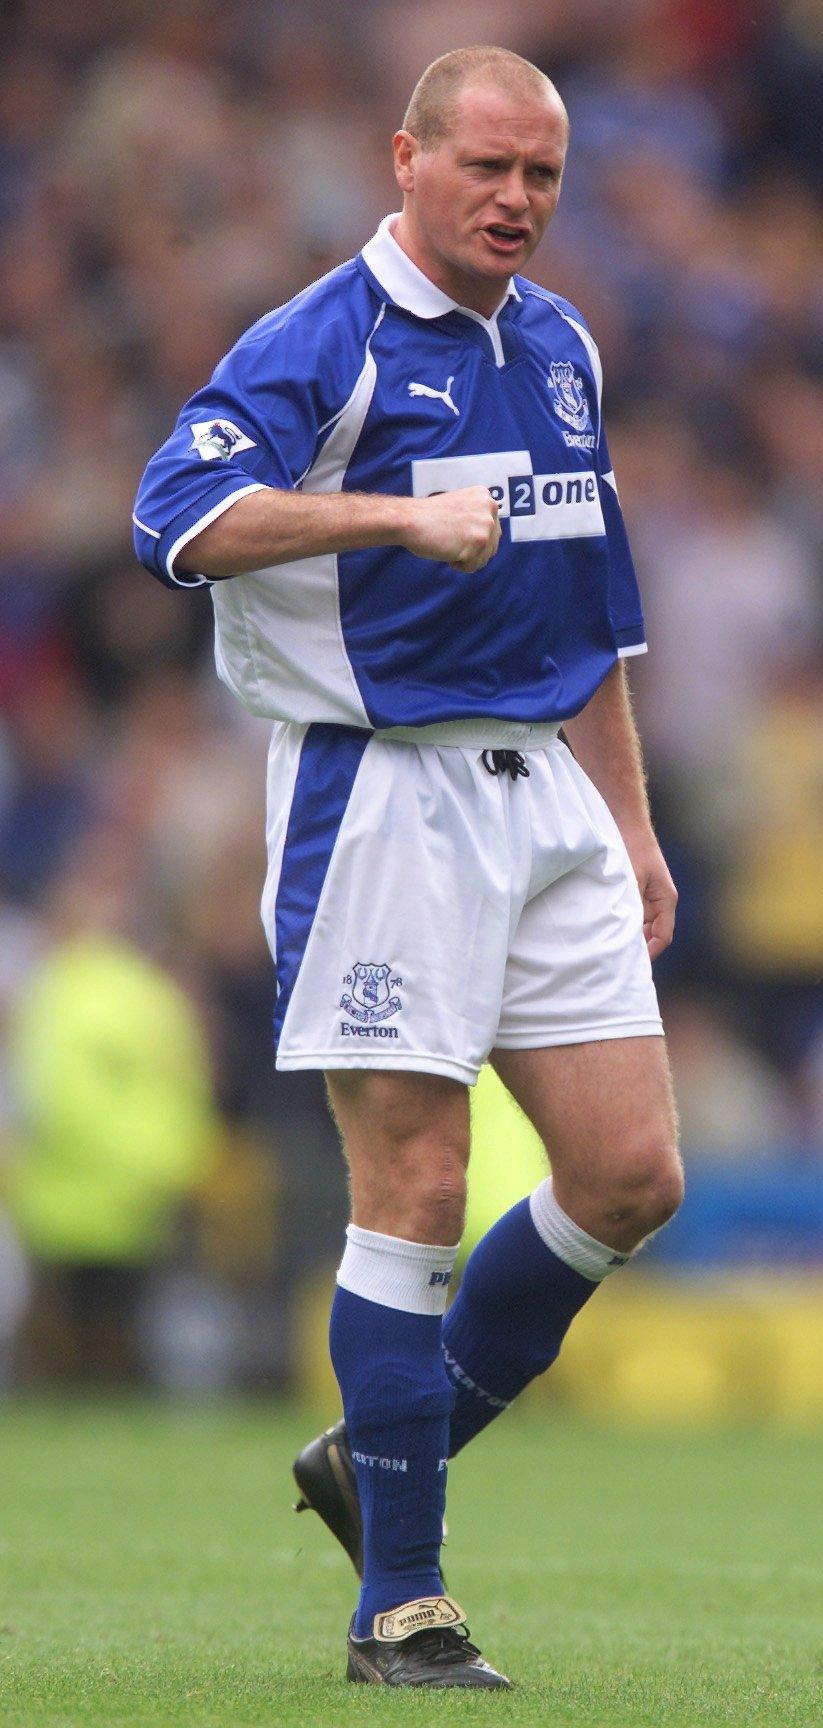 Gazza played for Everton between 2000-2002